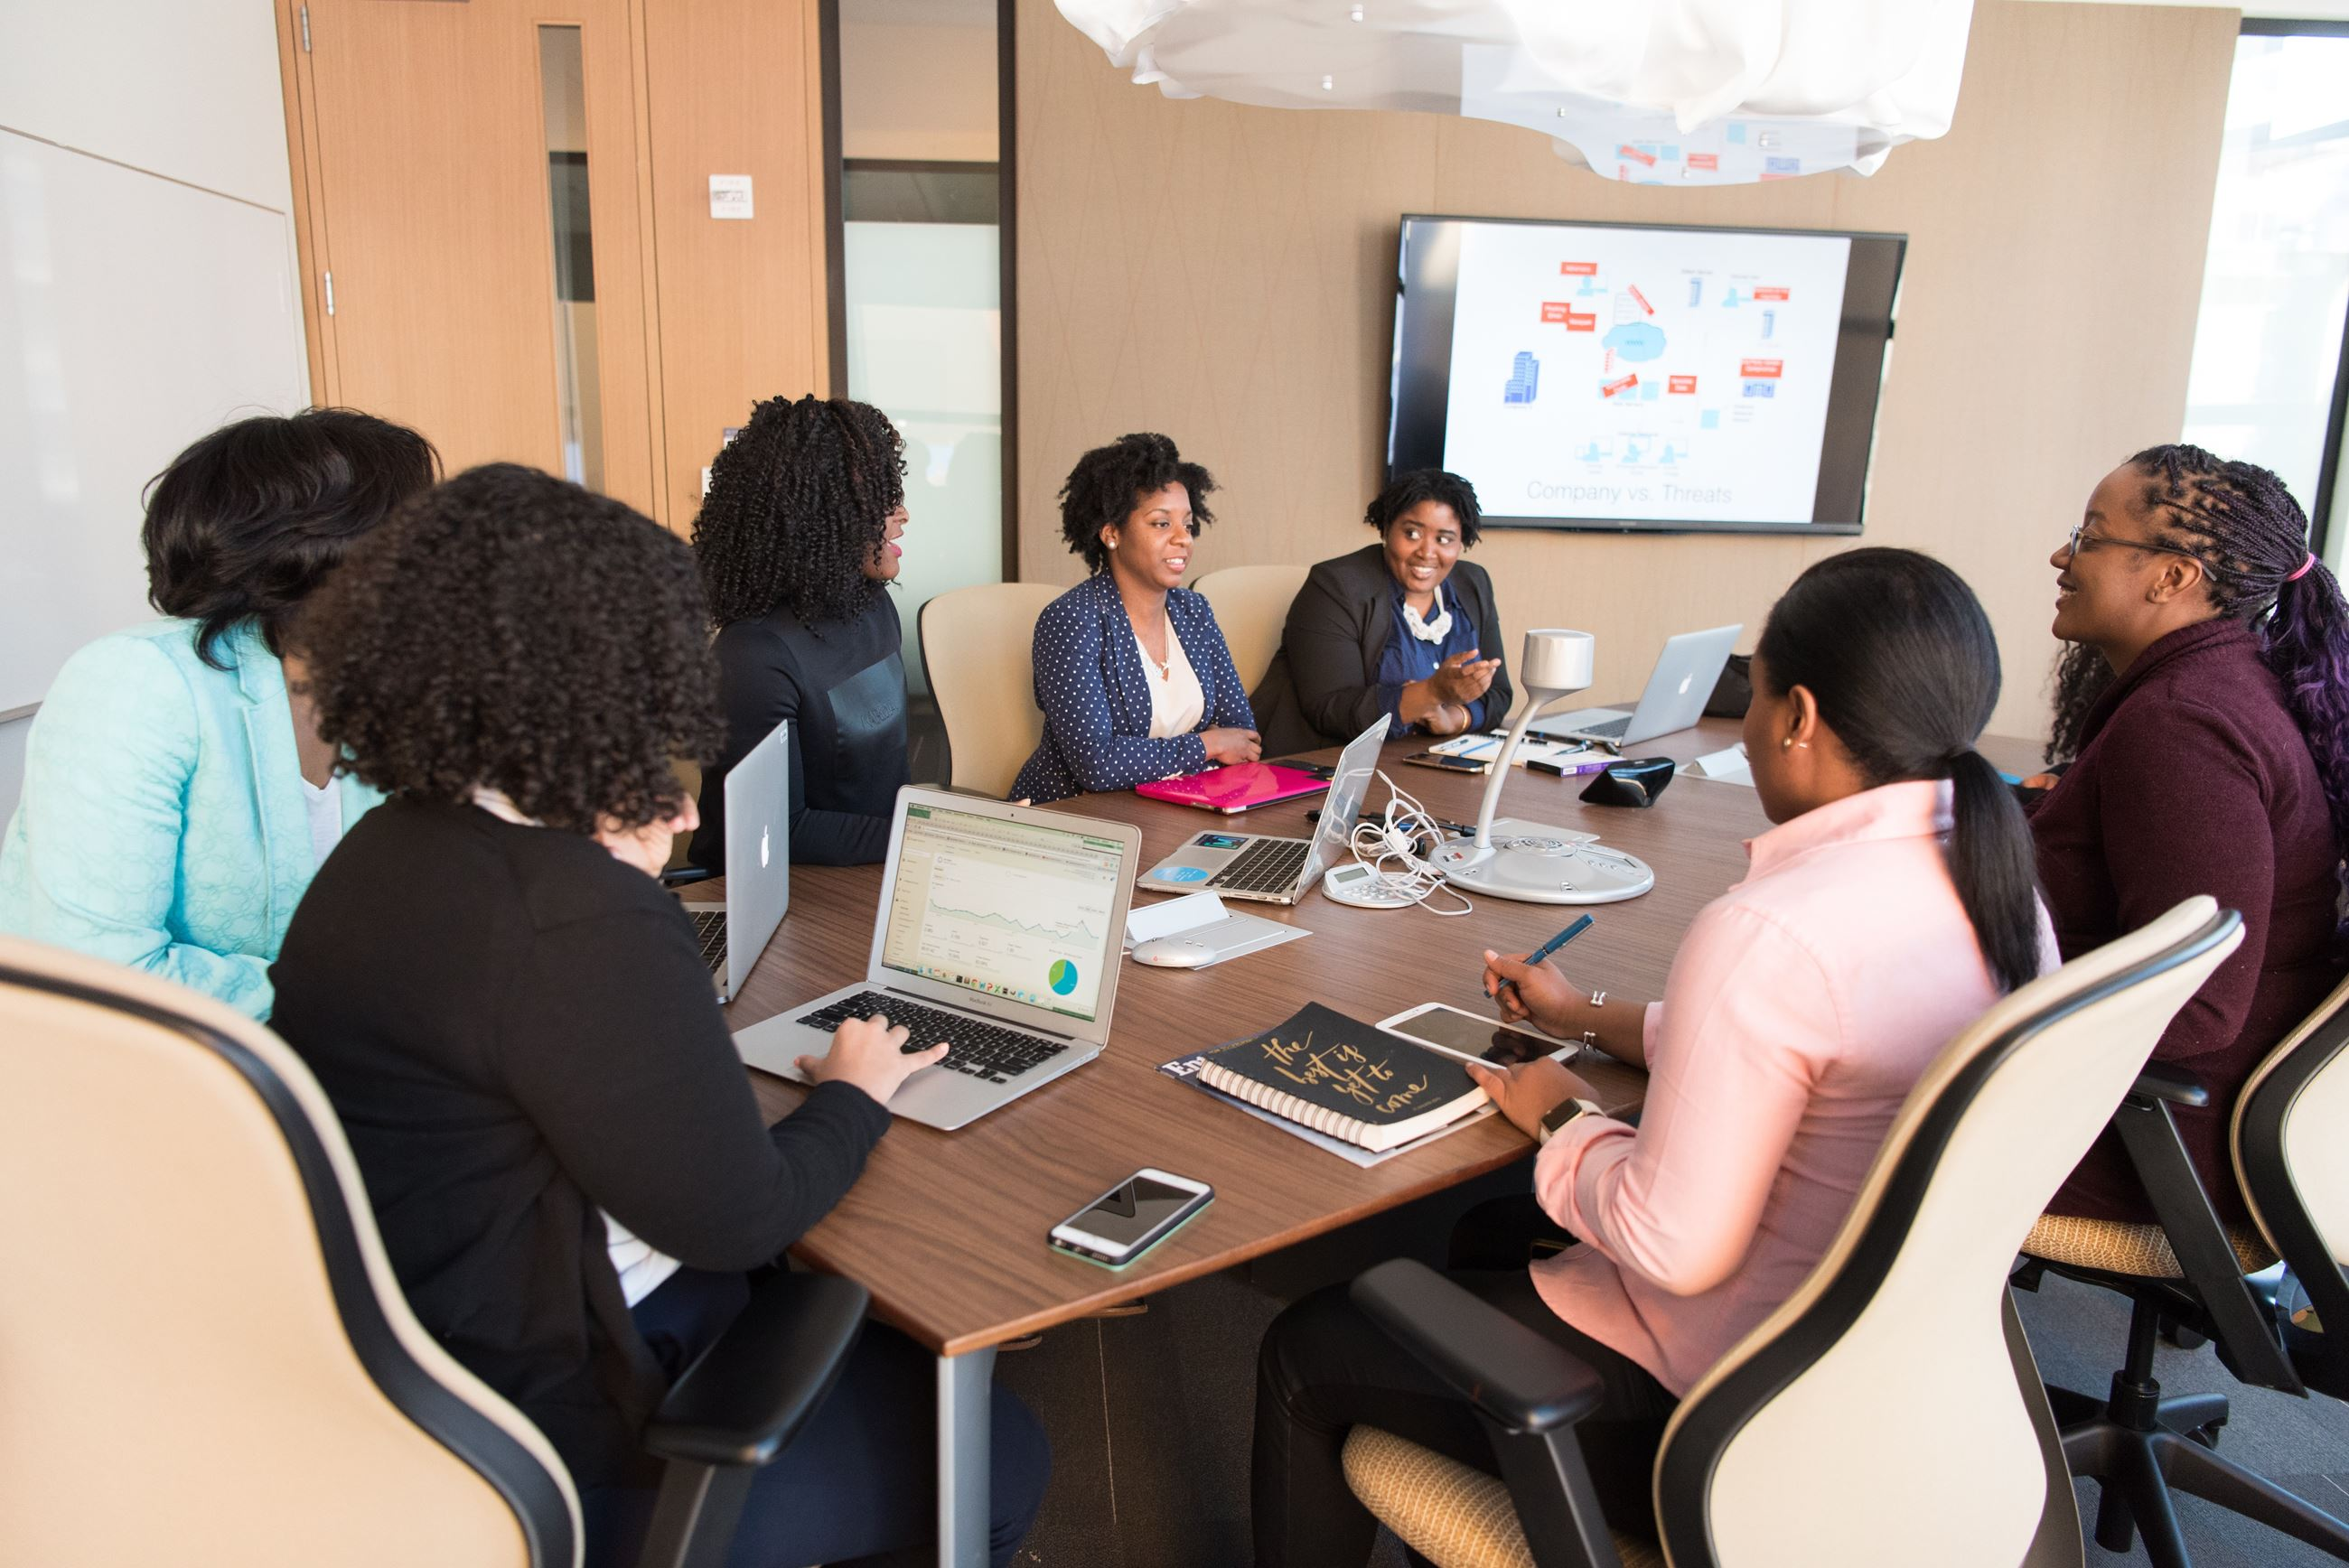 image of a group of women brainstorming at a meeting